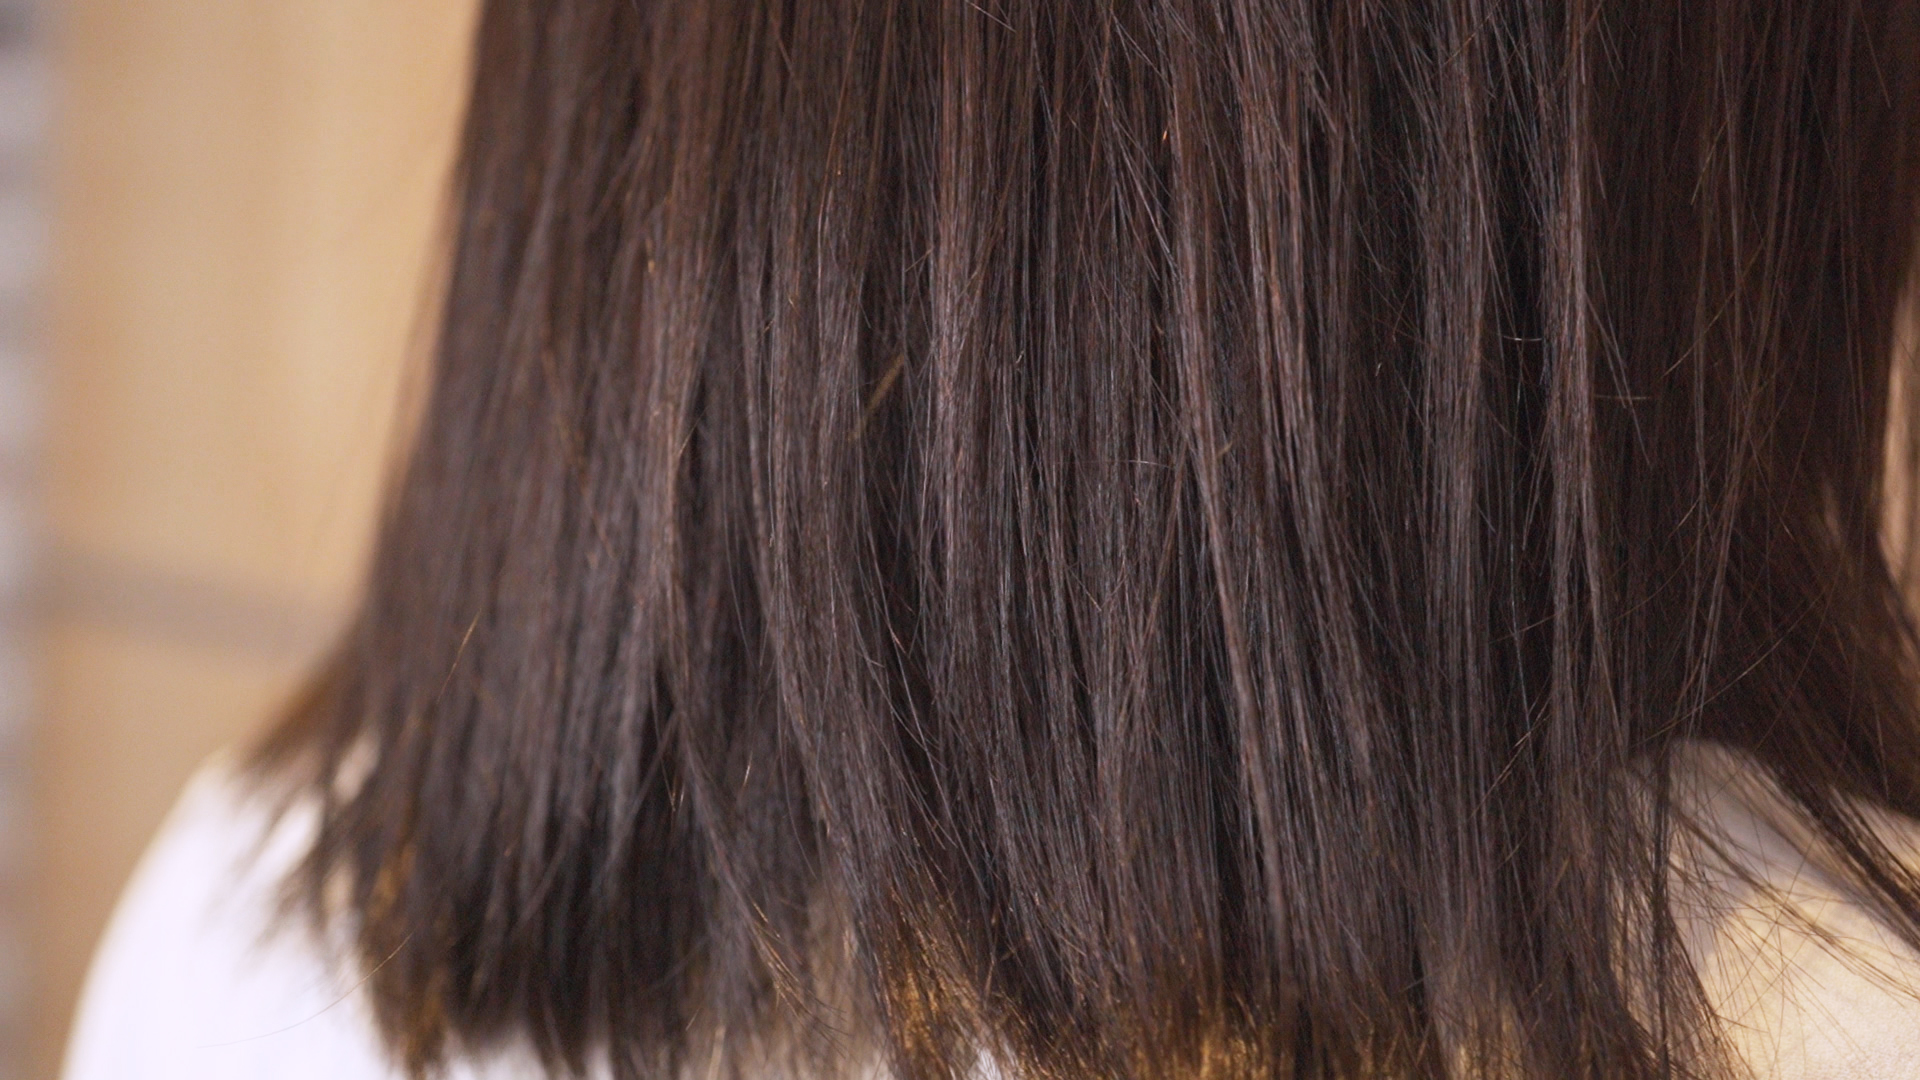 Here's a close up of Rachel's hair texture before the hair treatment and Korean Perm. Limp, frizzy with visible split ends.